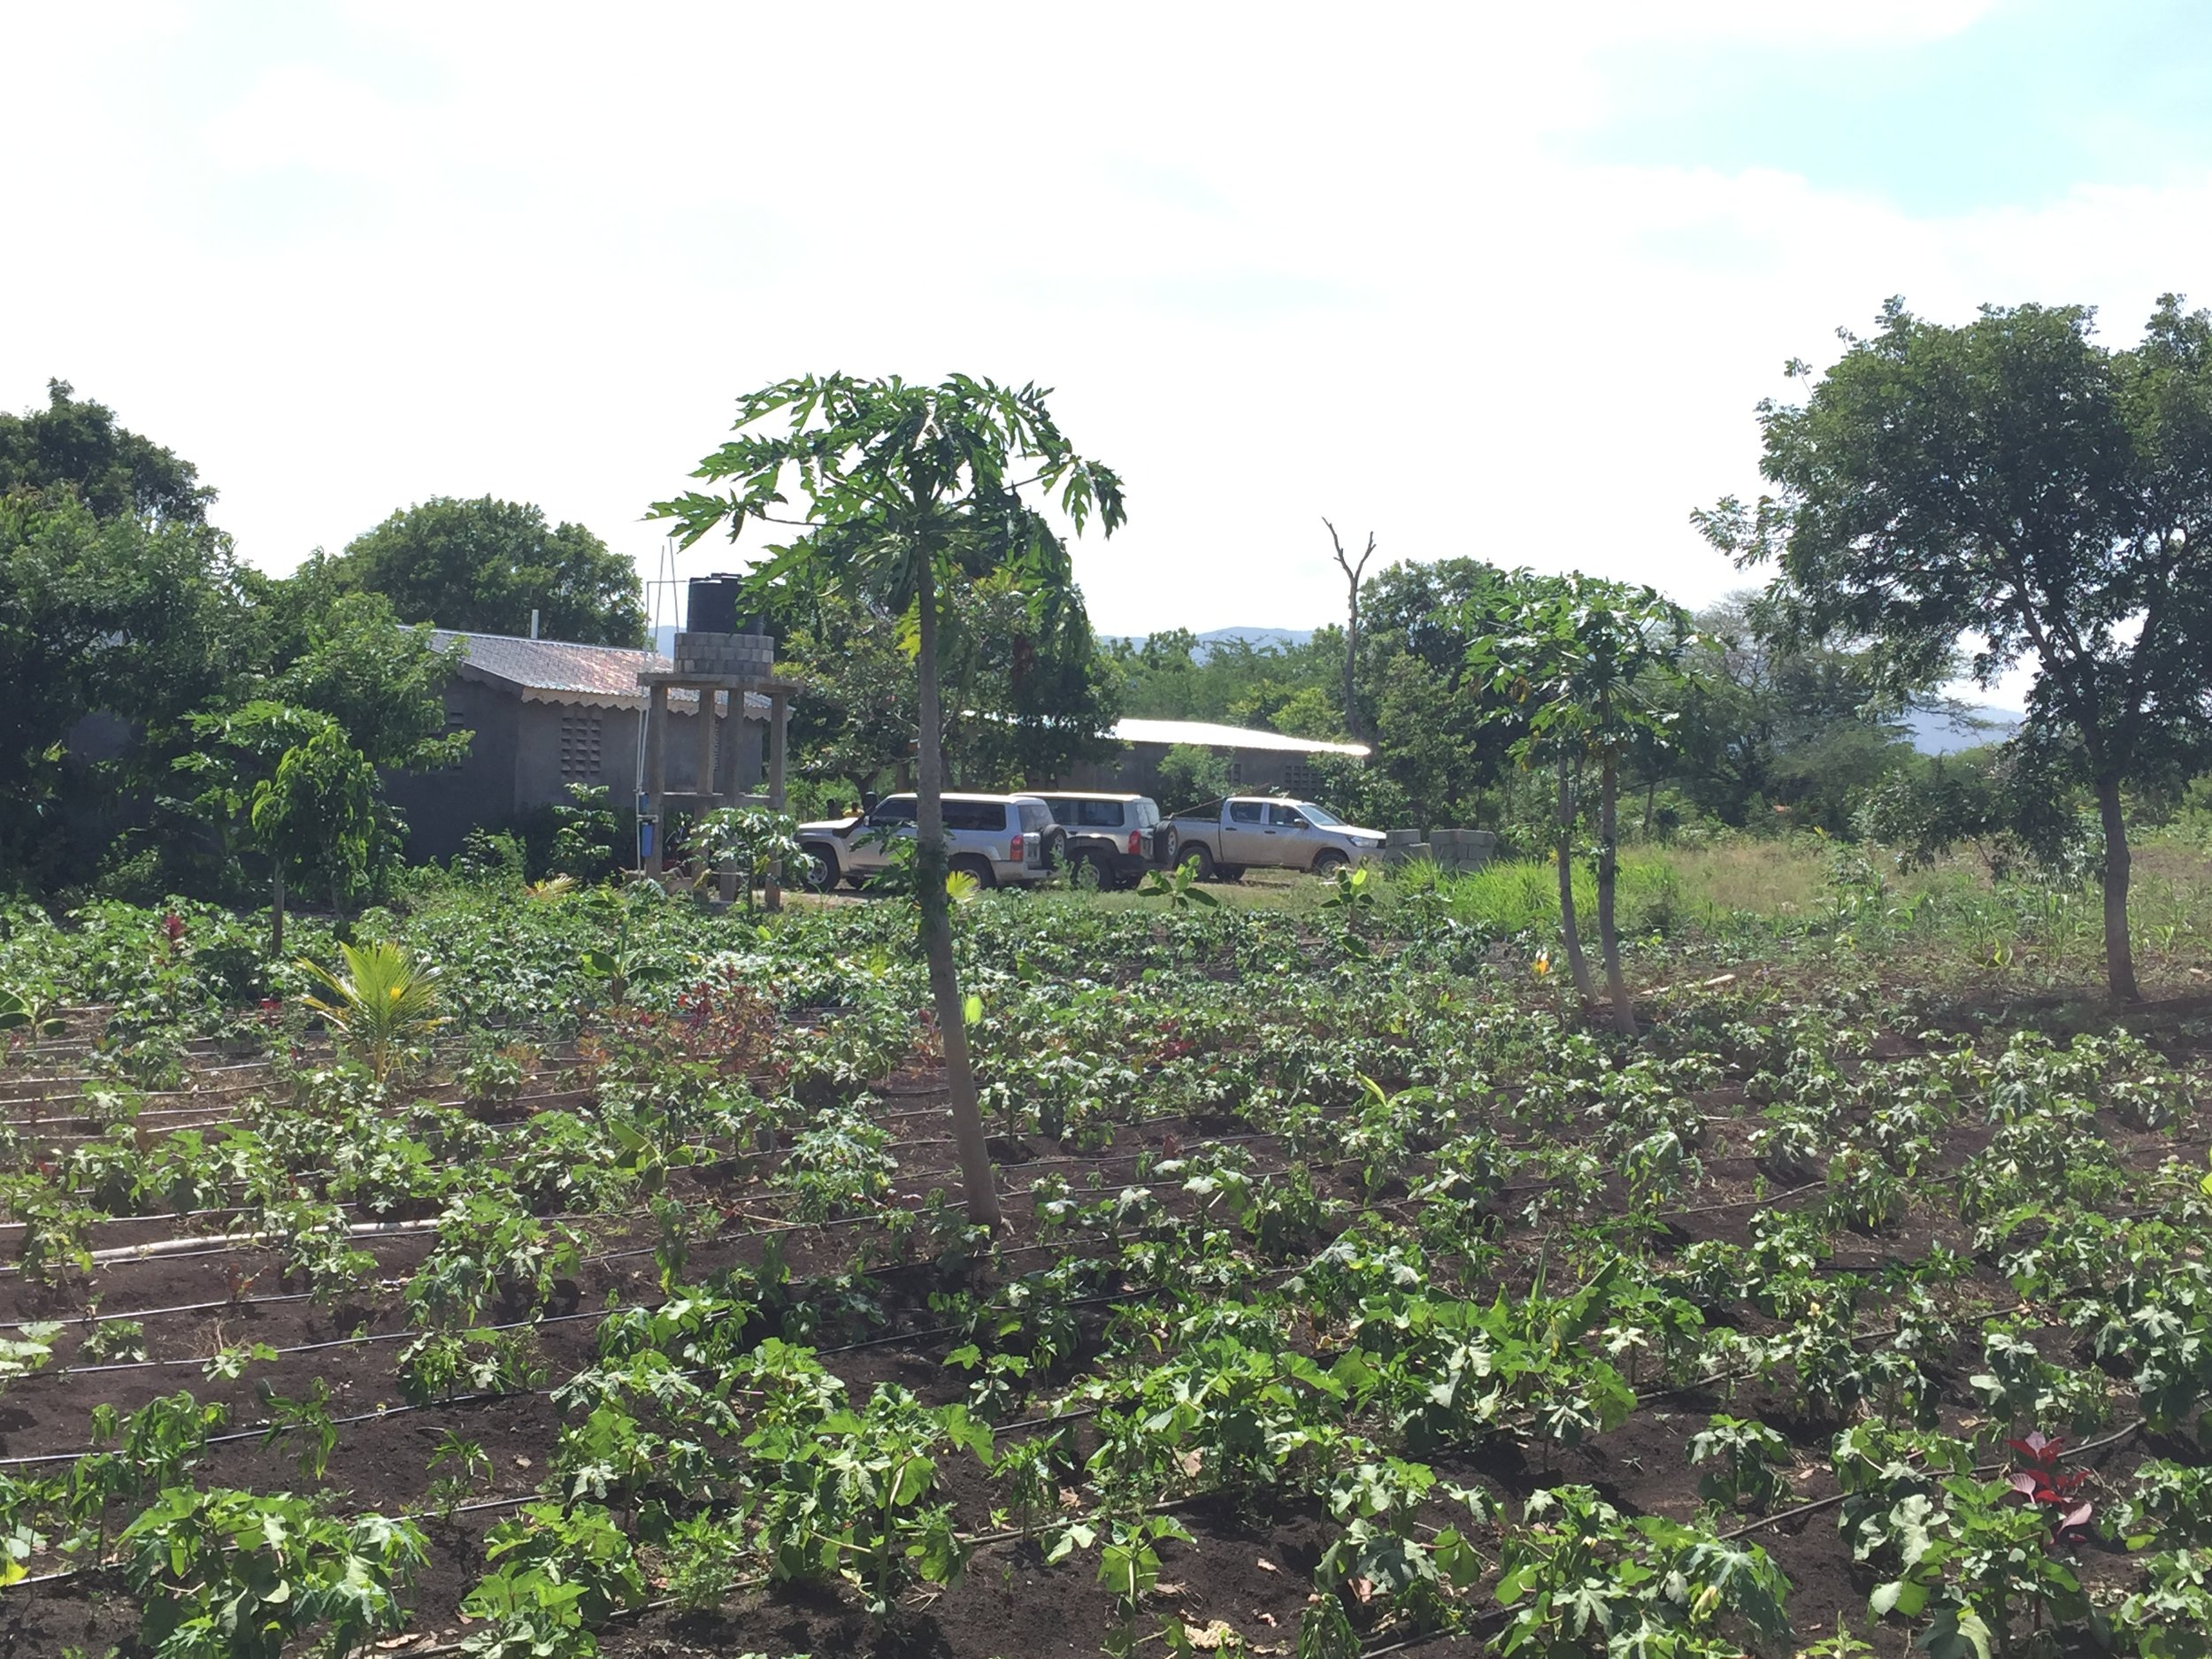 The PDL main office and agricultural test plots near St. Rafael, Haiti.